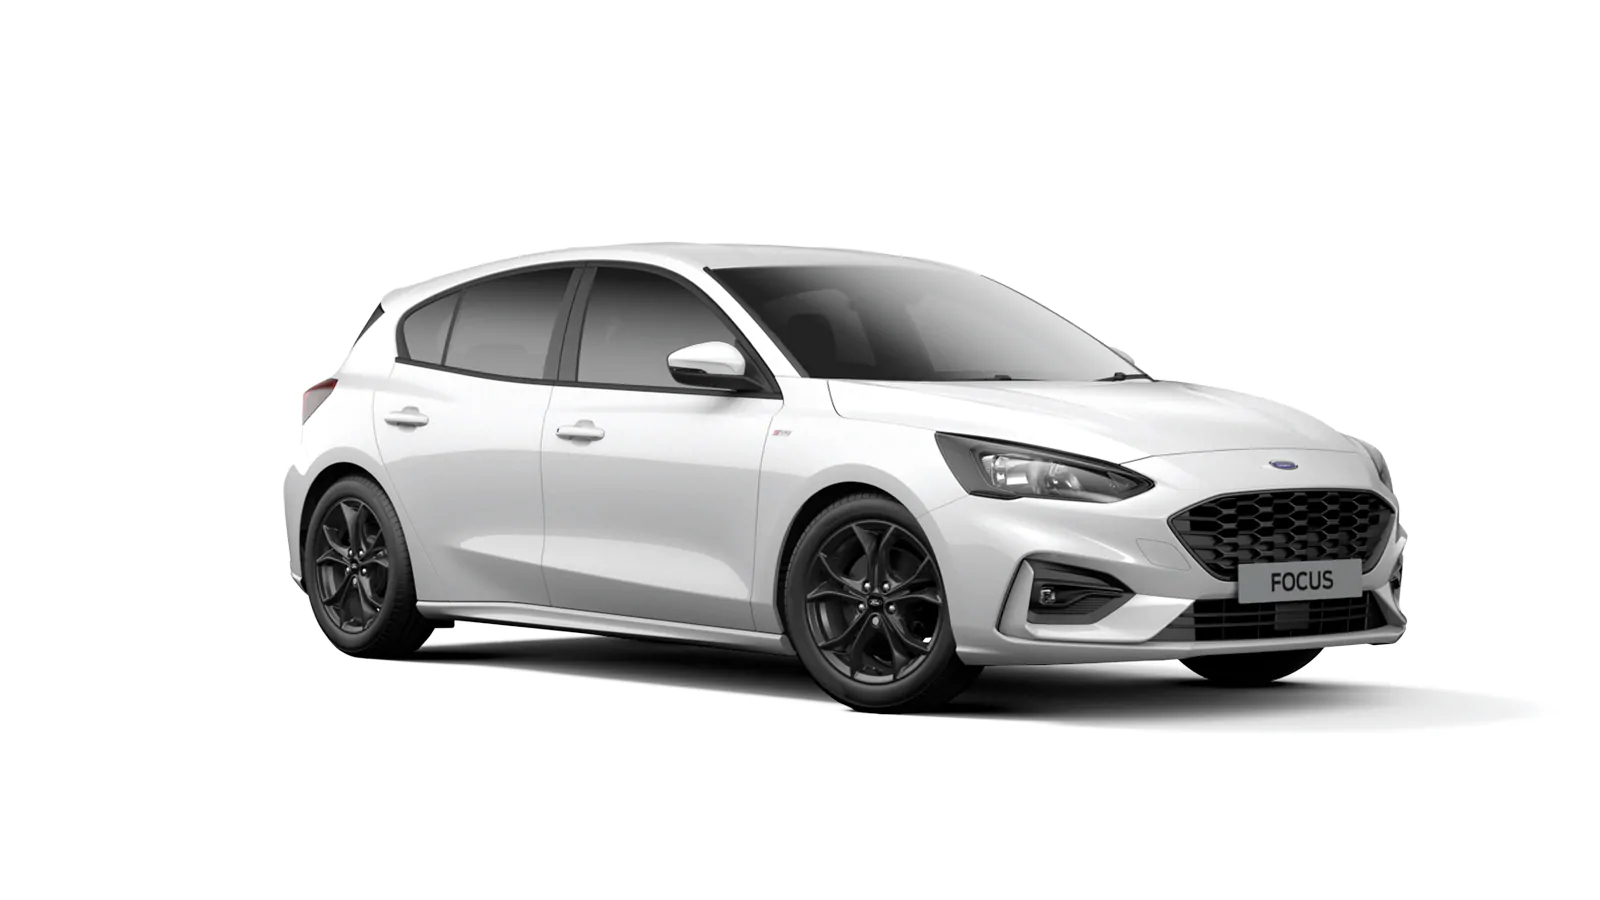 191 Ford Focus ST-Line Automatic 1.5TDCI, Boland Motors